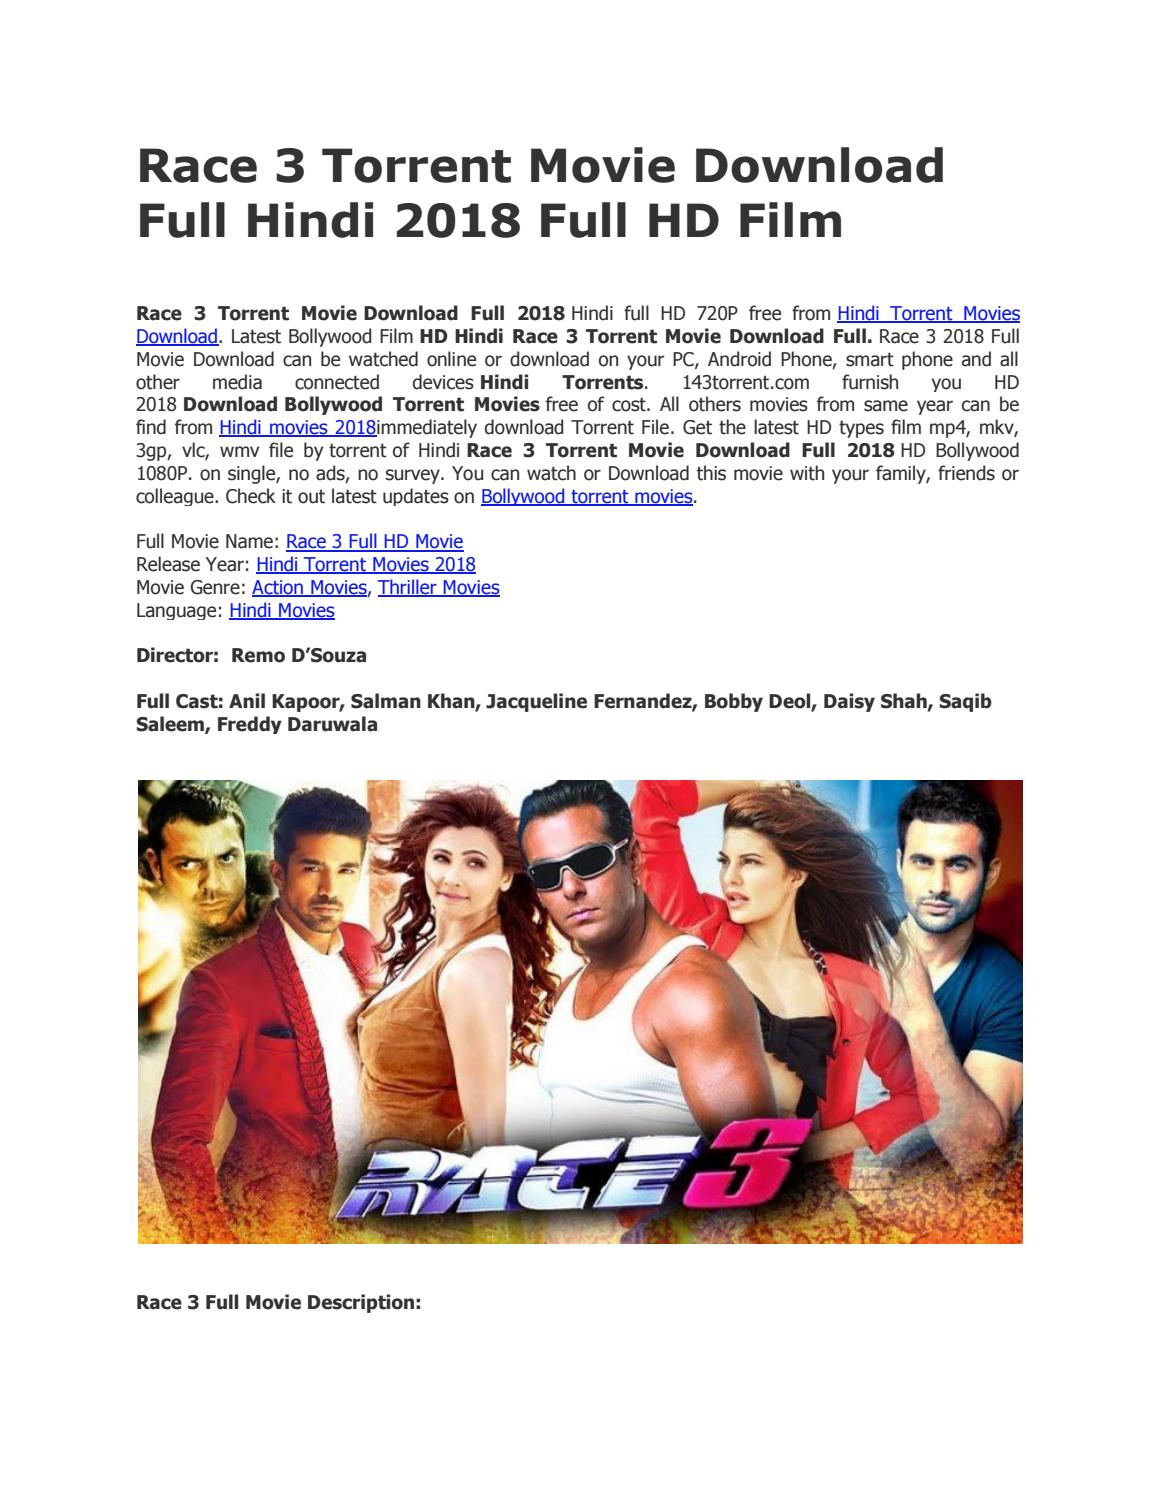 Race 3 Torrent Movie Download Full Bollywood Hd Film By Videosrack Issuu